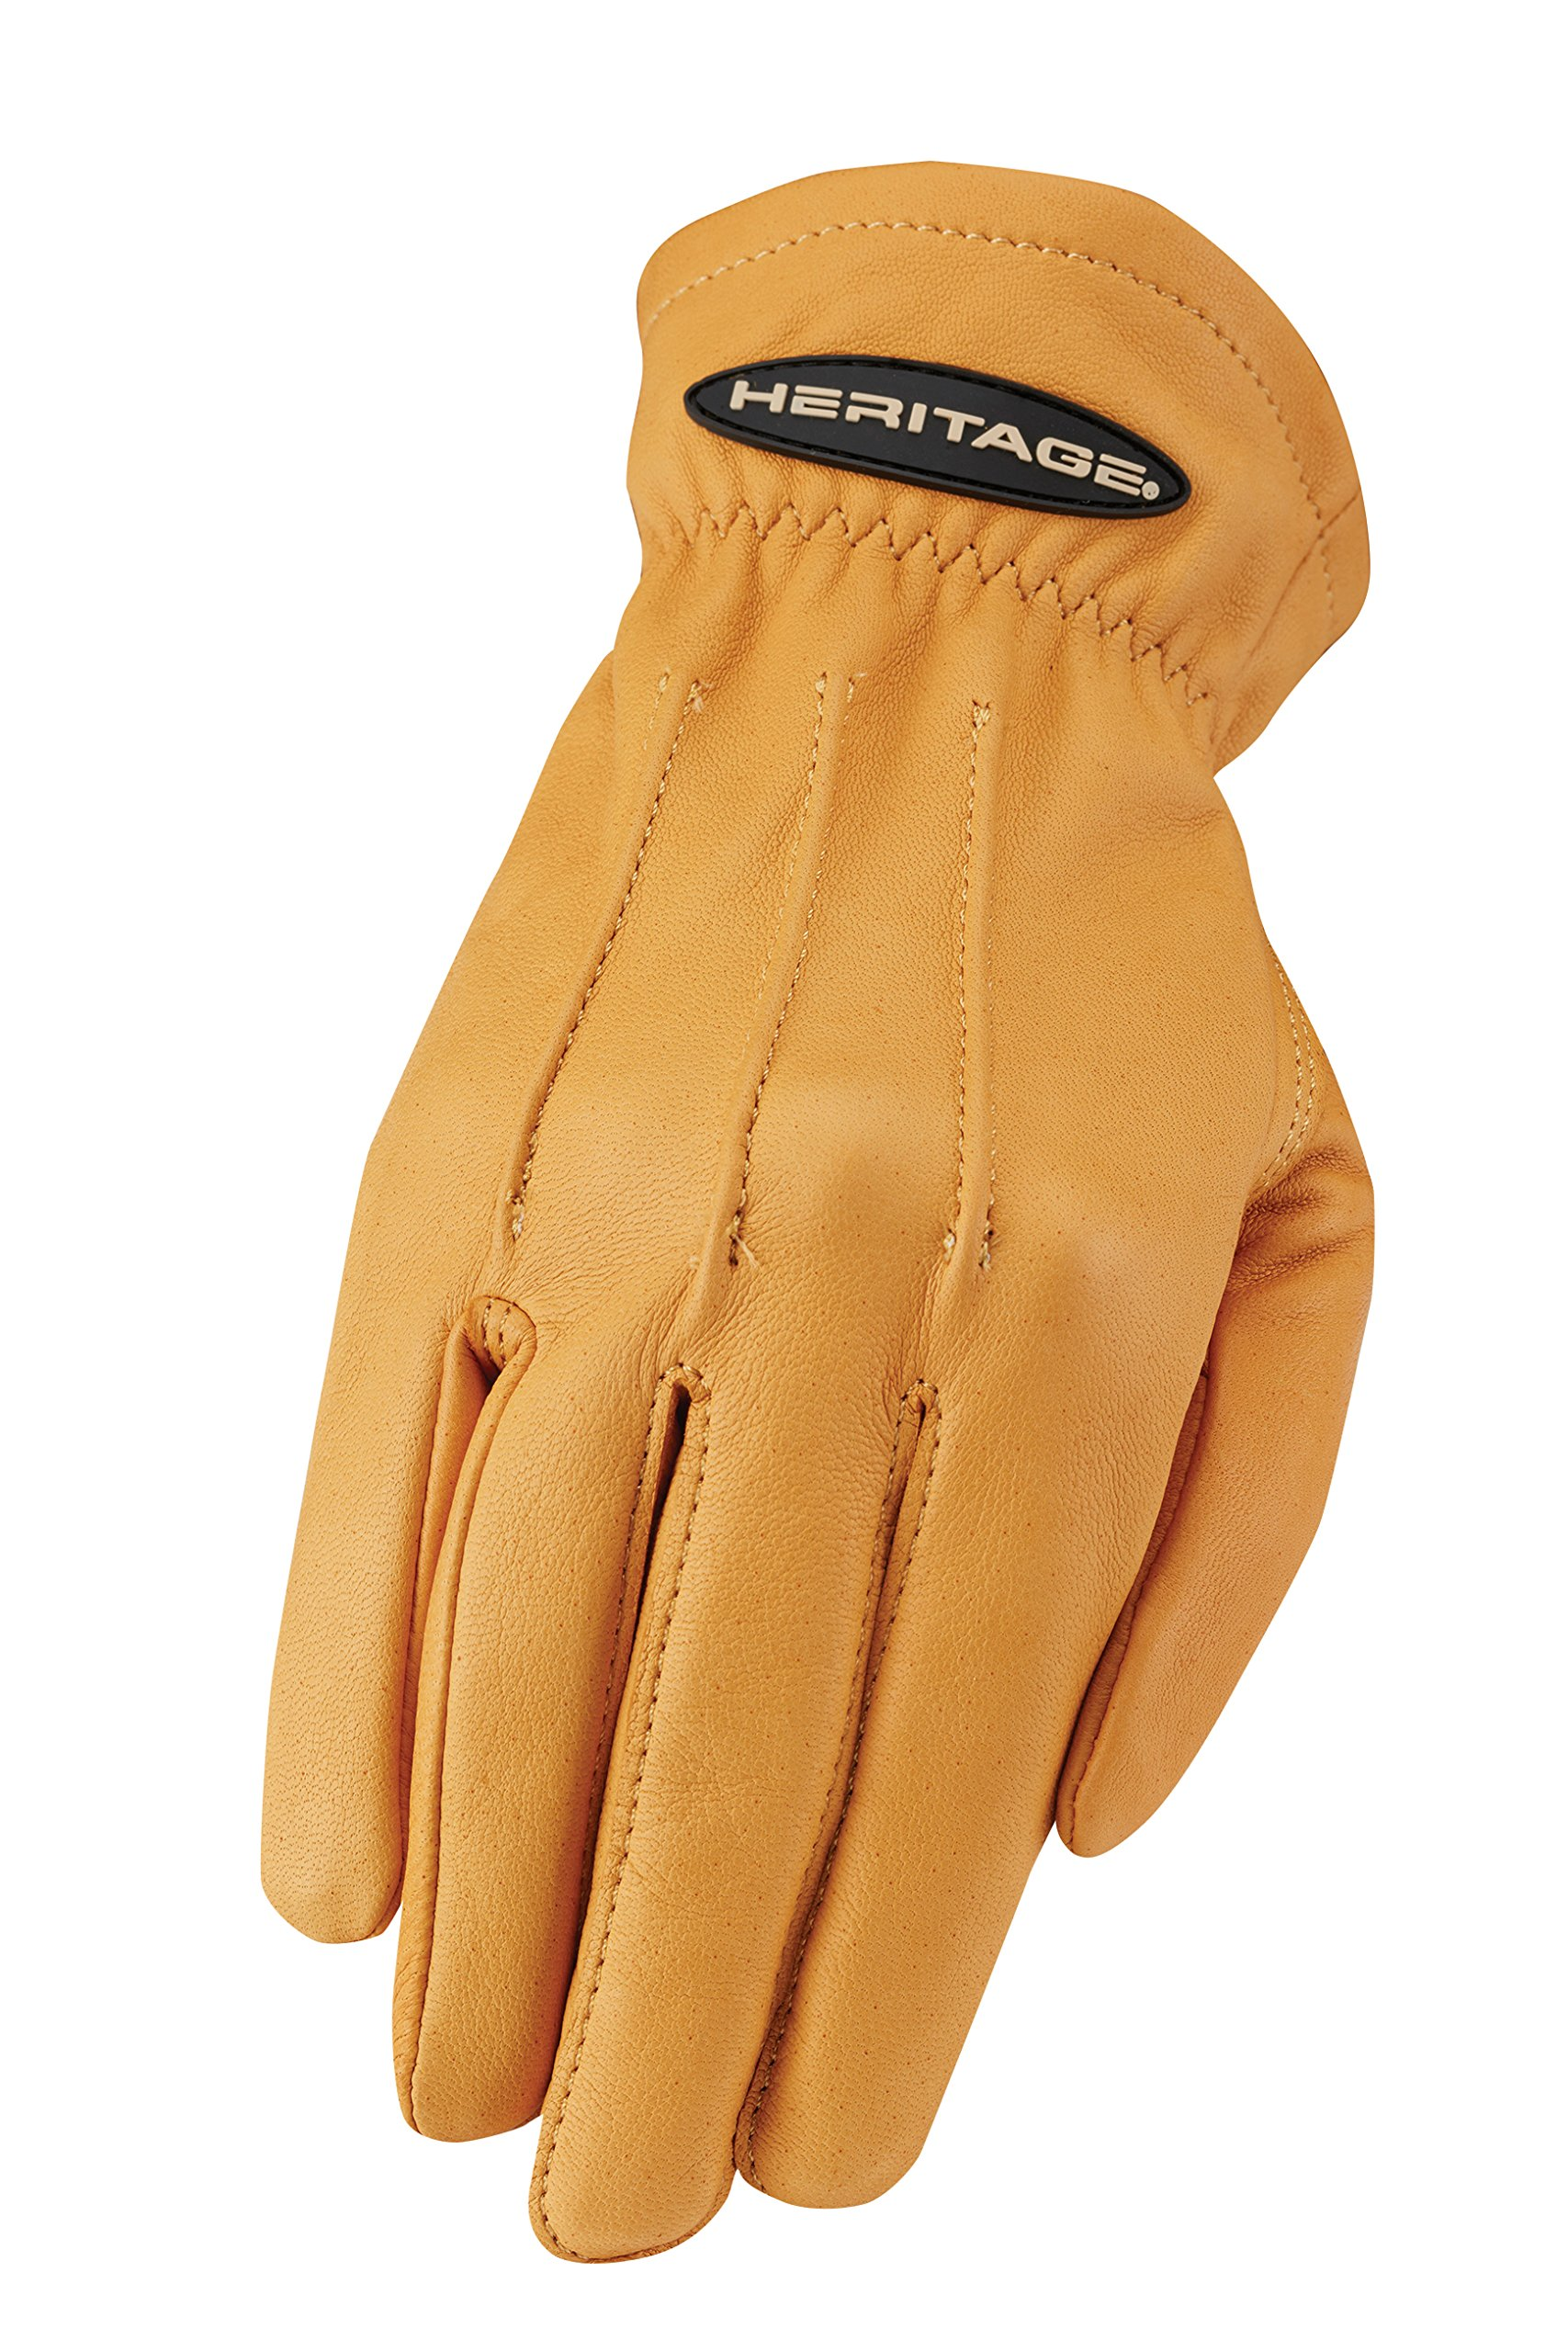 Heritage Trail Gloves, Size 8, Natural Tan